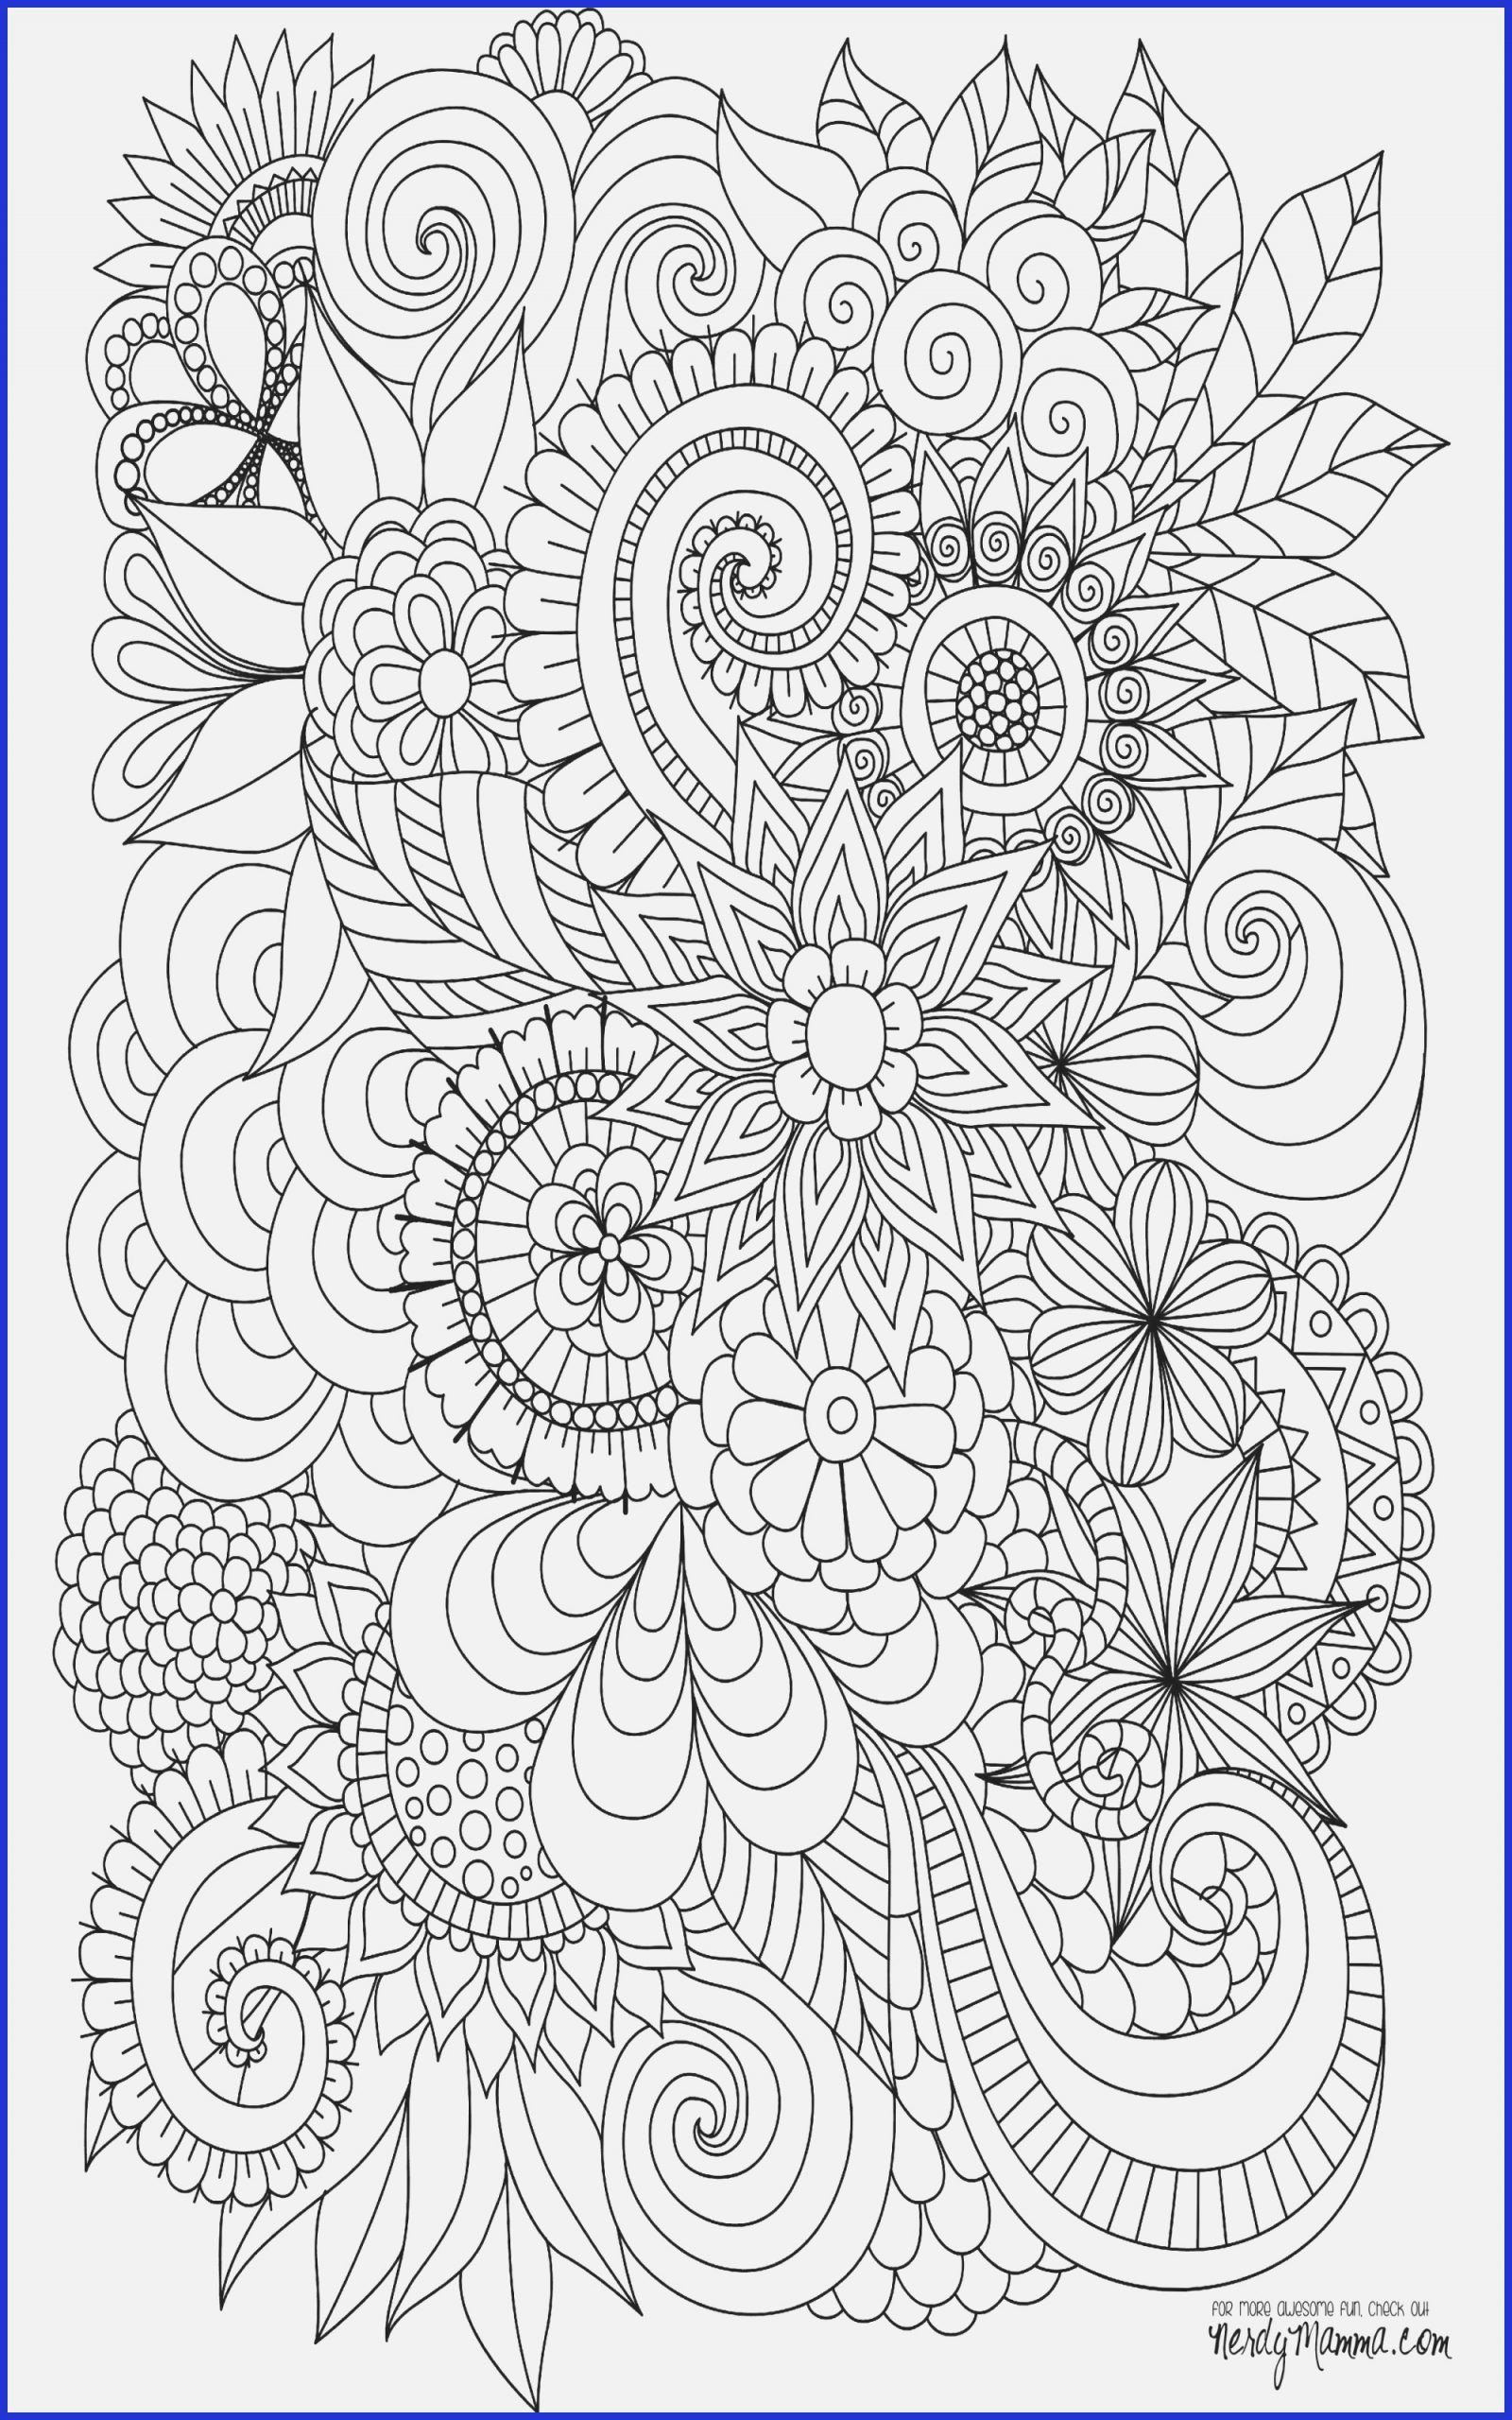 Large Mandala Coloring Pages Page Coloring Coloring Pagesala Colory Number Picture Abstract Coloring Pages Detailed Coloring Pages Mandala Coloring Pages